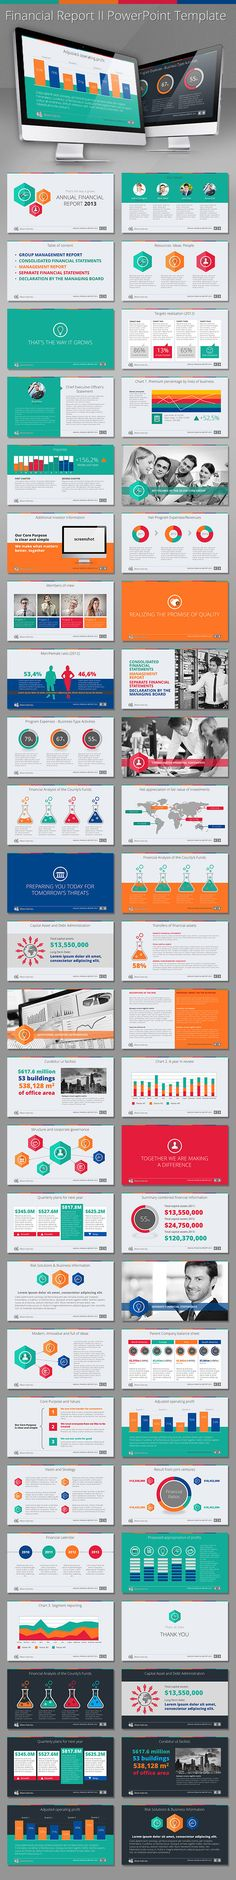 Recommended options / option comparison / divider page Financial Report II HD PowerPoint Template - Presentation Templates